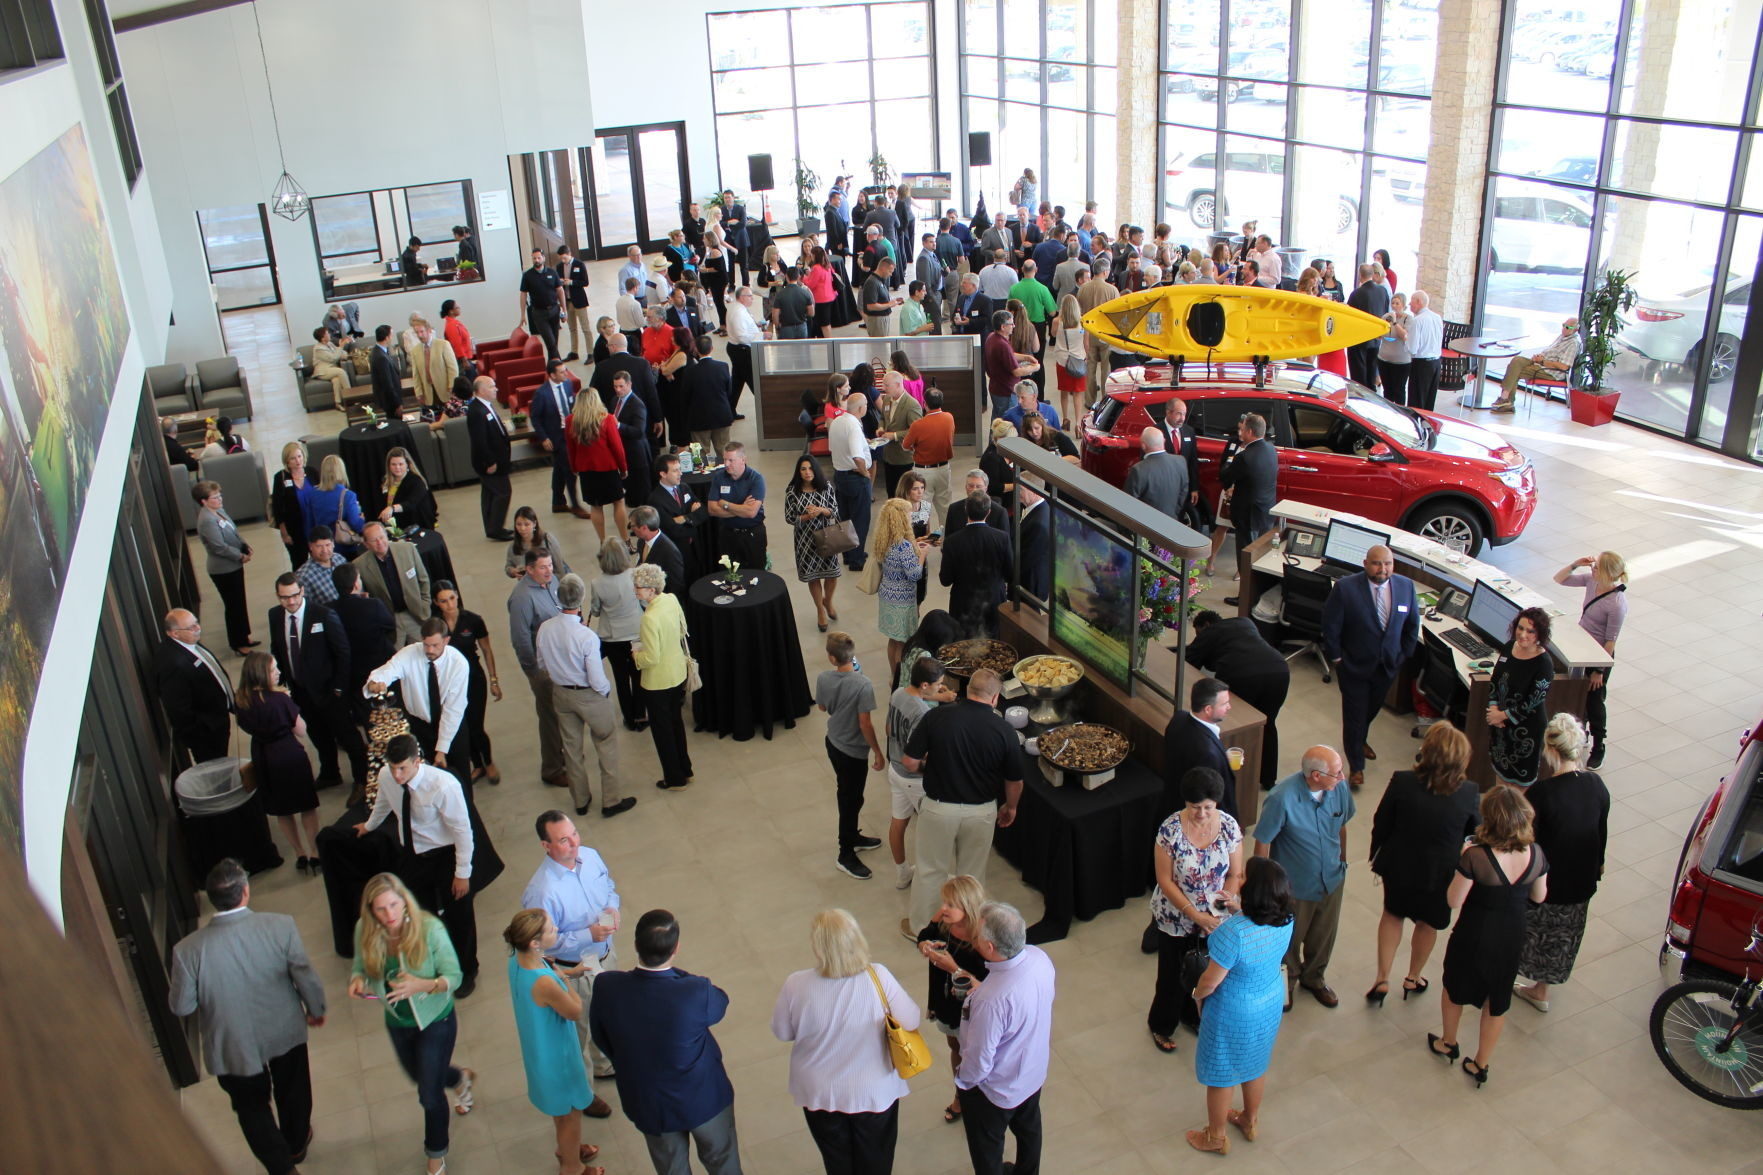 About 200 community members turned out for the grand opening ceremony for Toyota of Cedar Park. There was live music, food and drinks for the occasion, Tuesday, June 6.